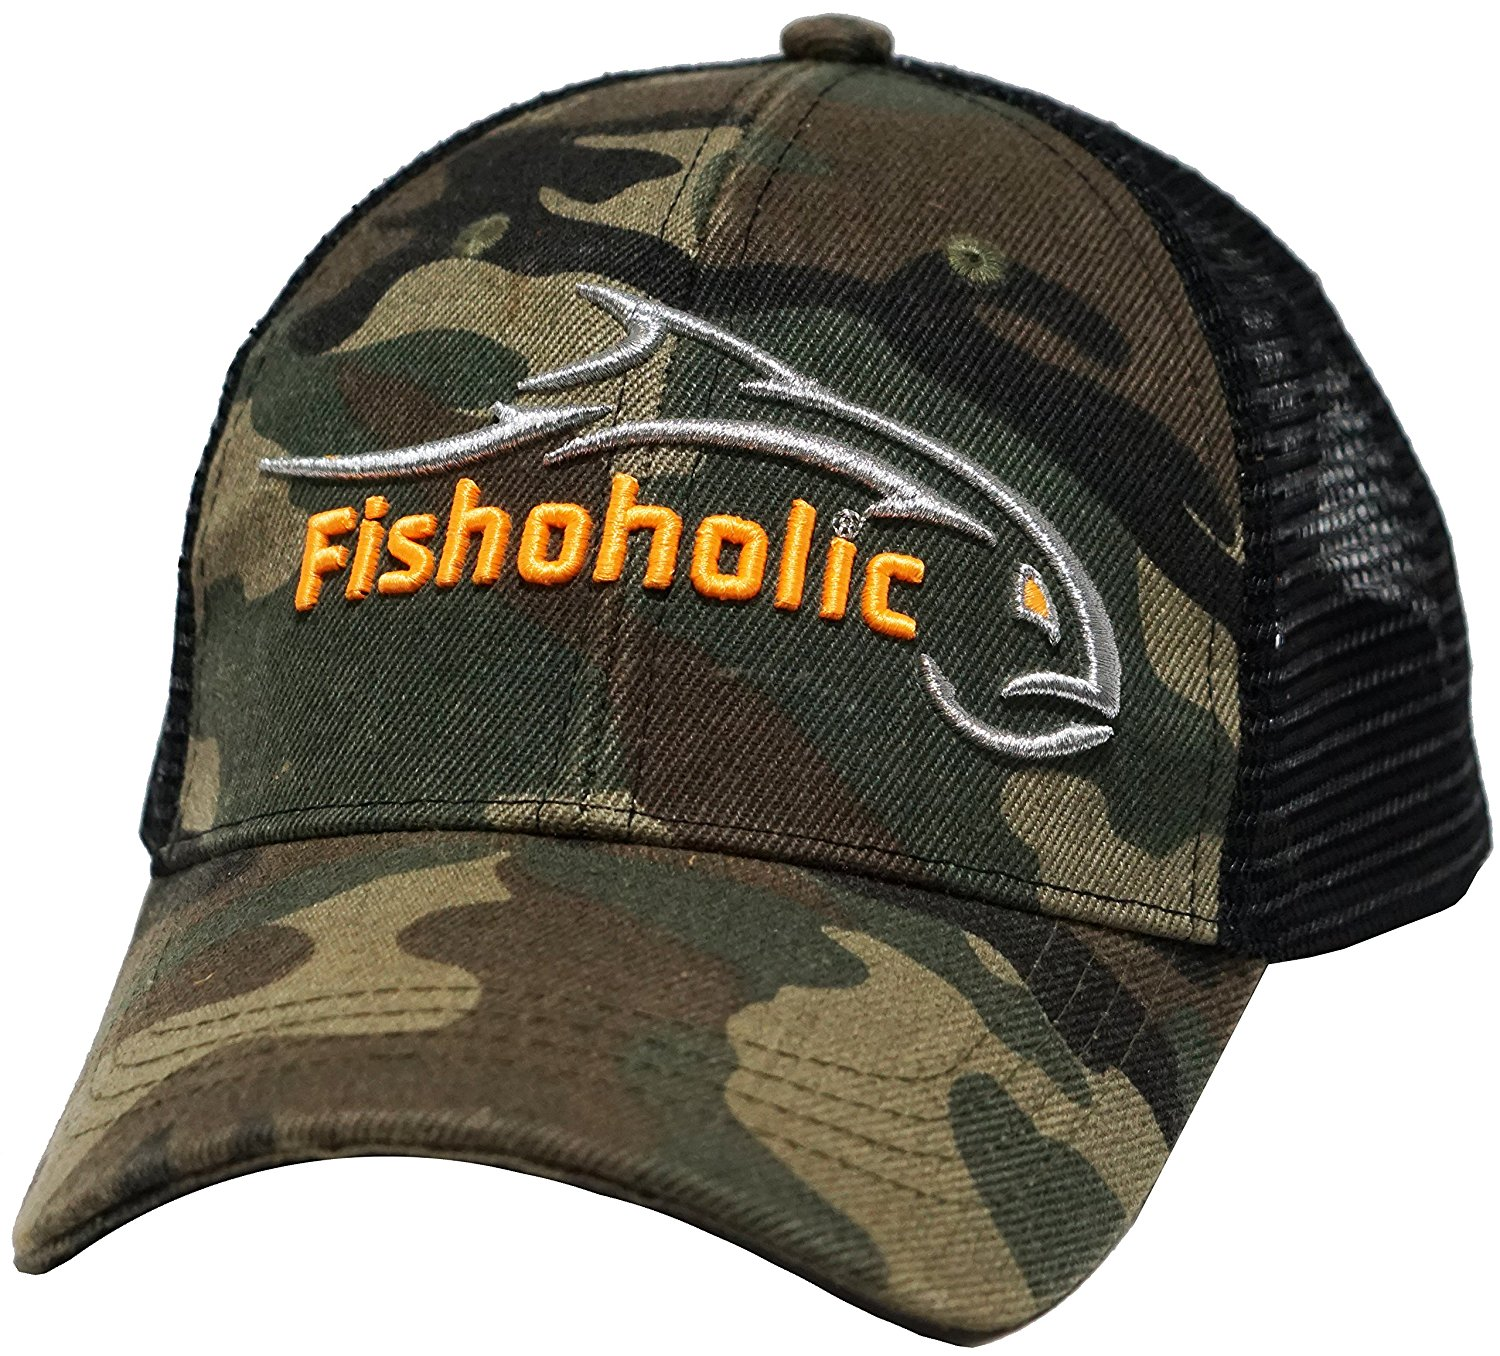 "Fishoholic (R) Baseball Fishing Hat - ""Bend Your Rod "" on Back. FREE Sticker incl. Fishaholic Camo with Black Mesh or Flexfit - Regular or Puff Embroidery - USPTO Registered Trademark (R)."